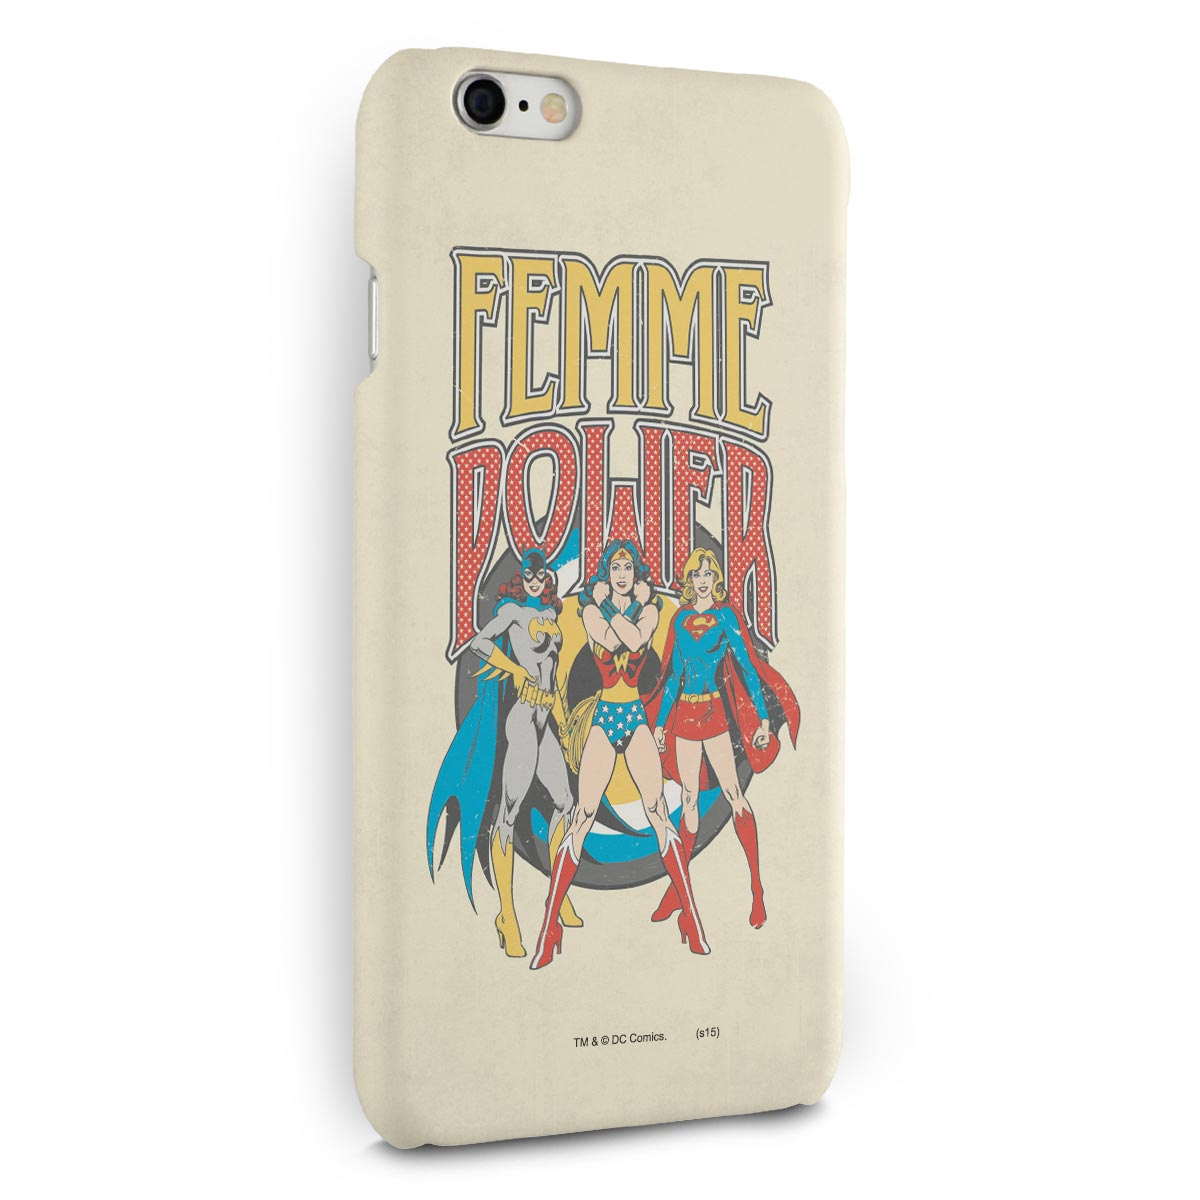 Capa para iPhone 6/6S Plus Power Girls Femme Power